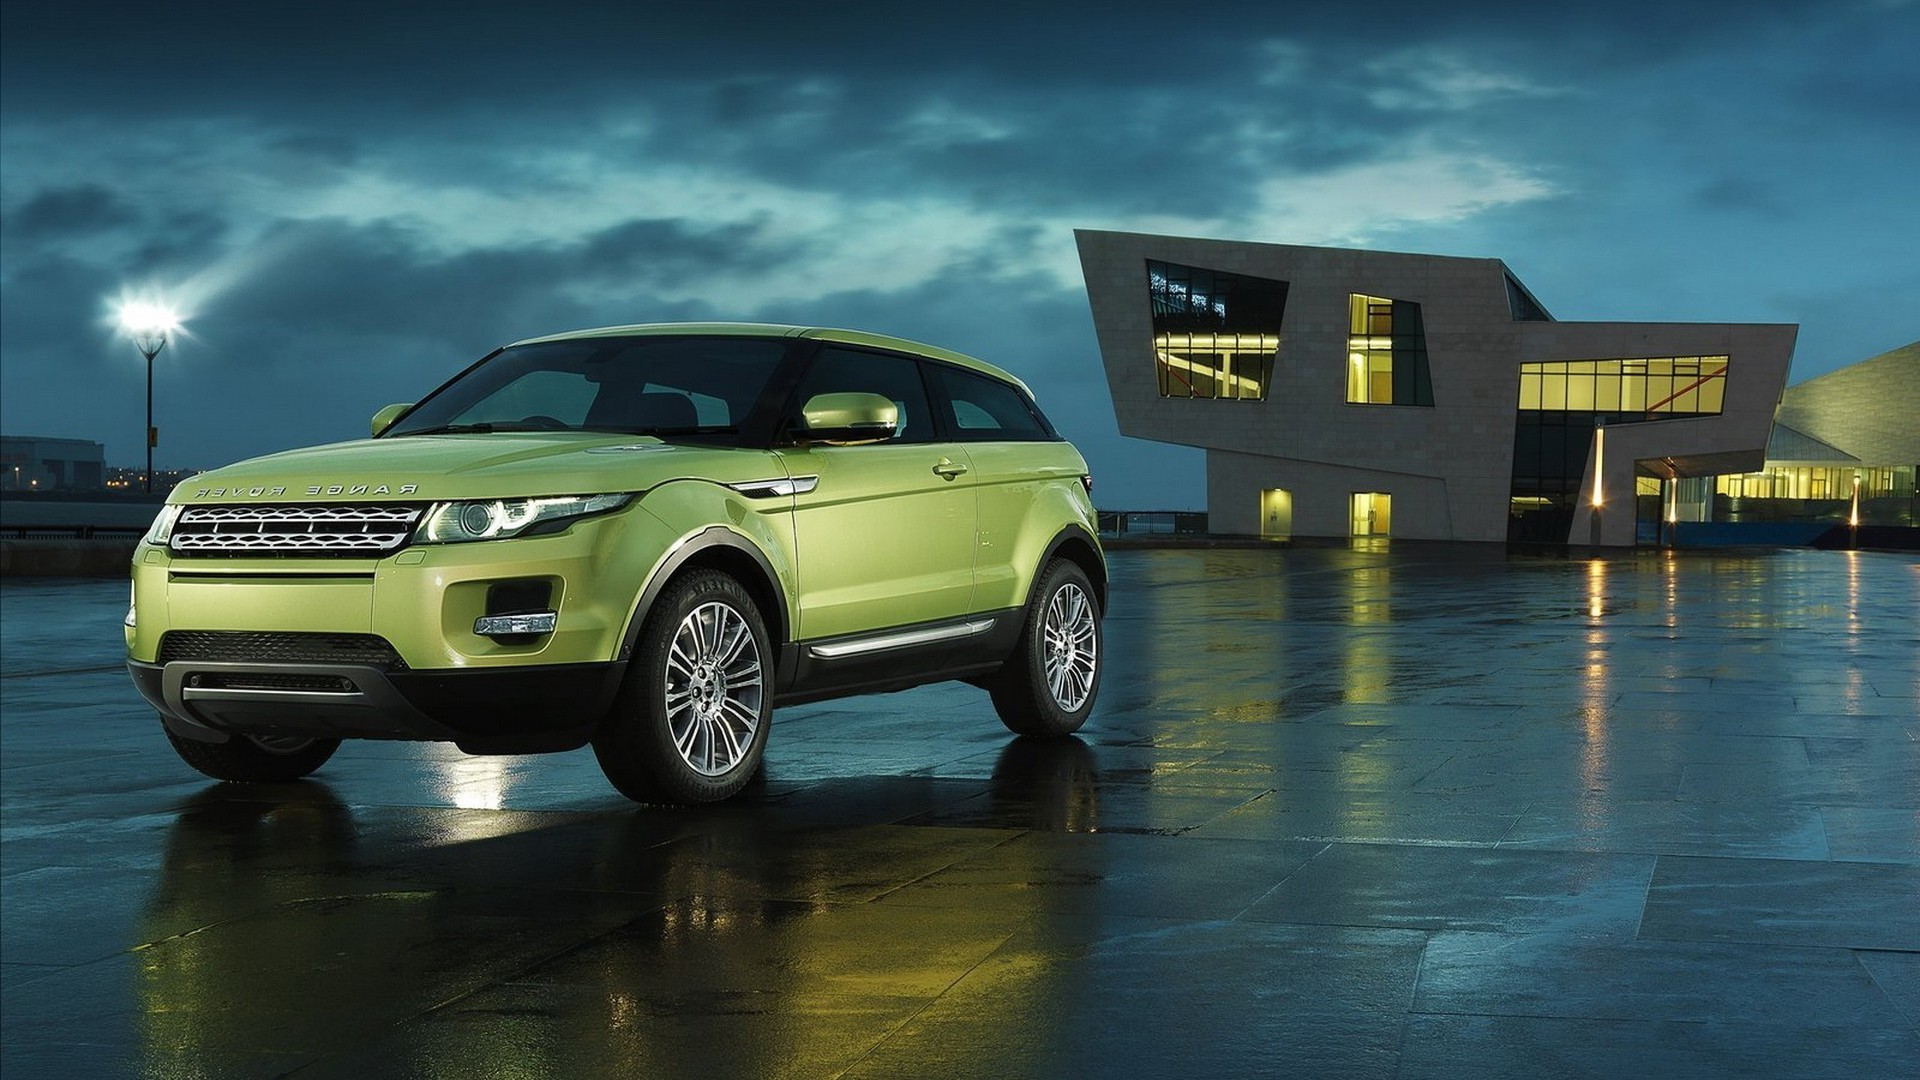 Range Rover Evoque Iphone Wallpapers For Free